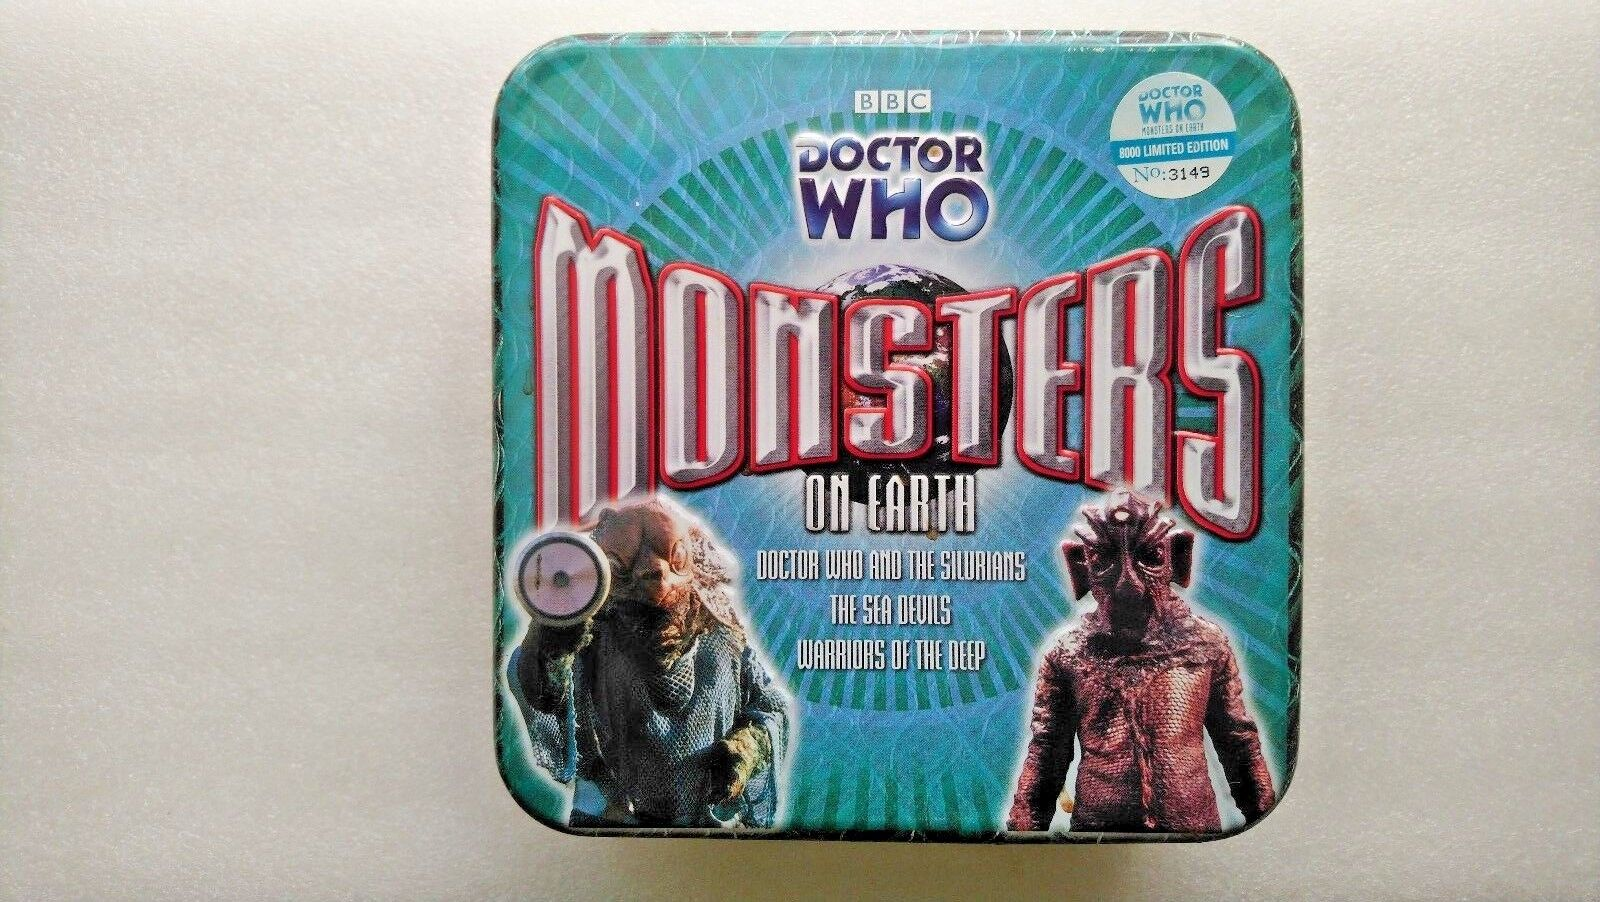 Doctor Who , Monsters on Earth (CD-Audio, 2006) - Limited Edition Tin (3149)